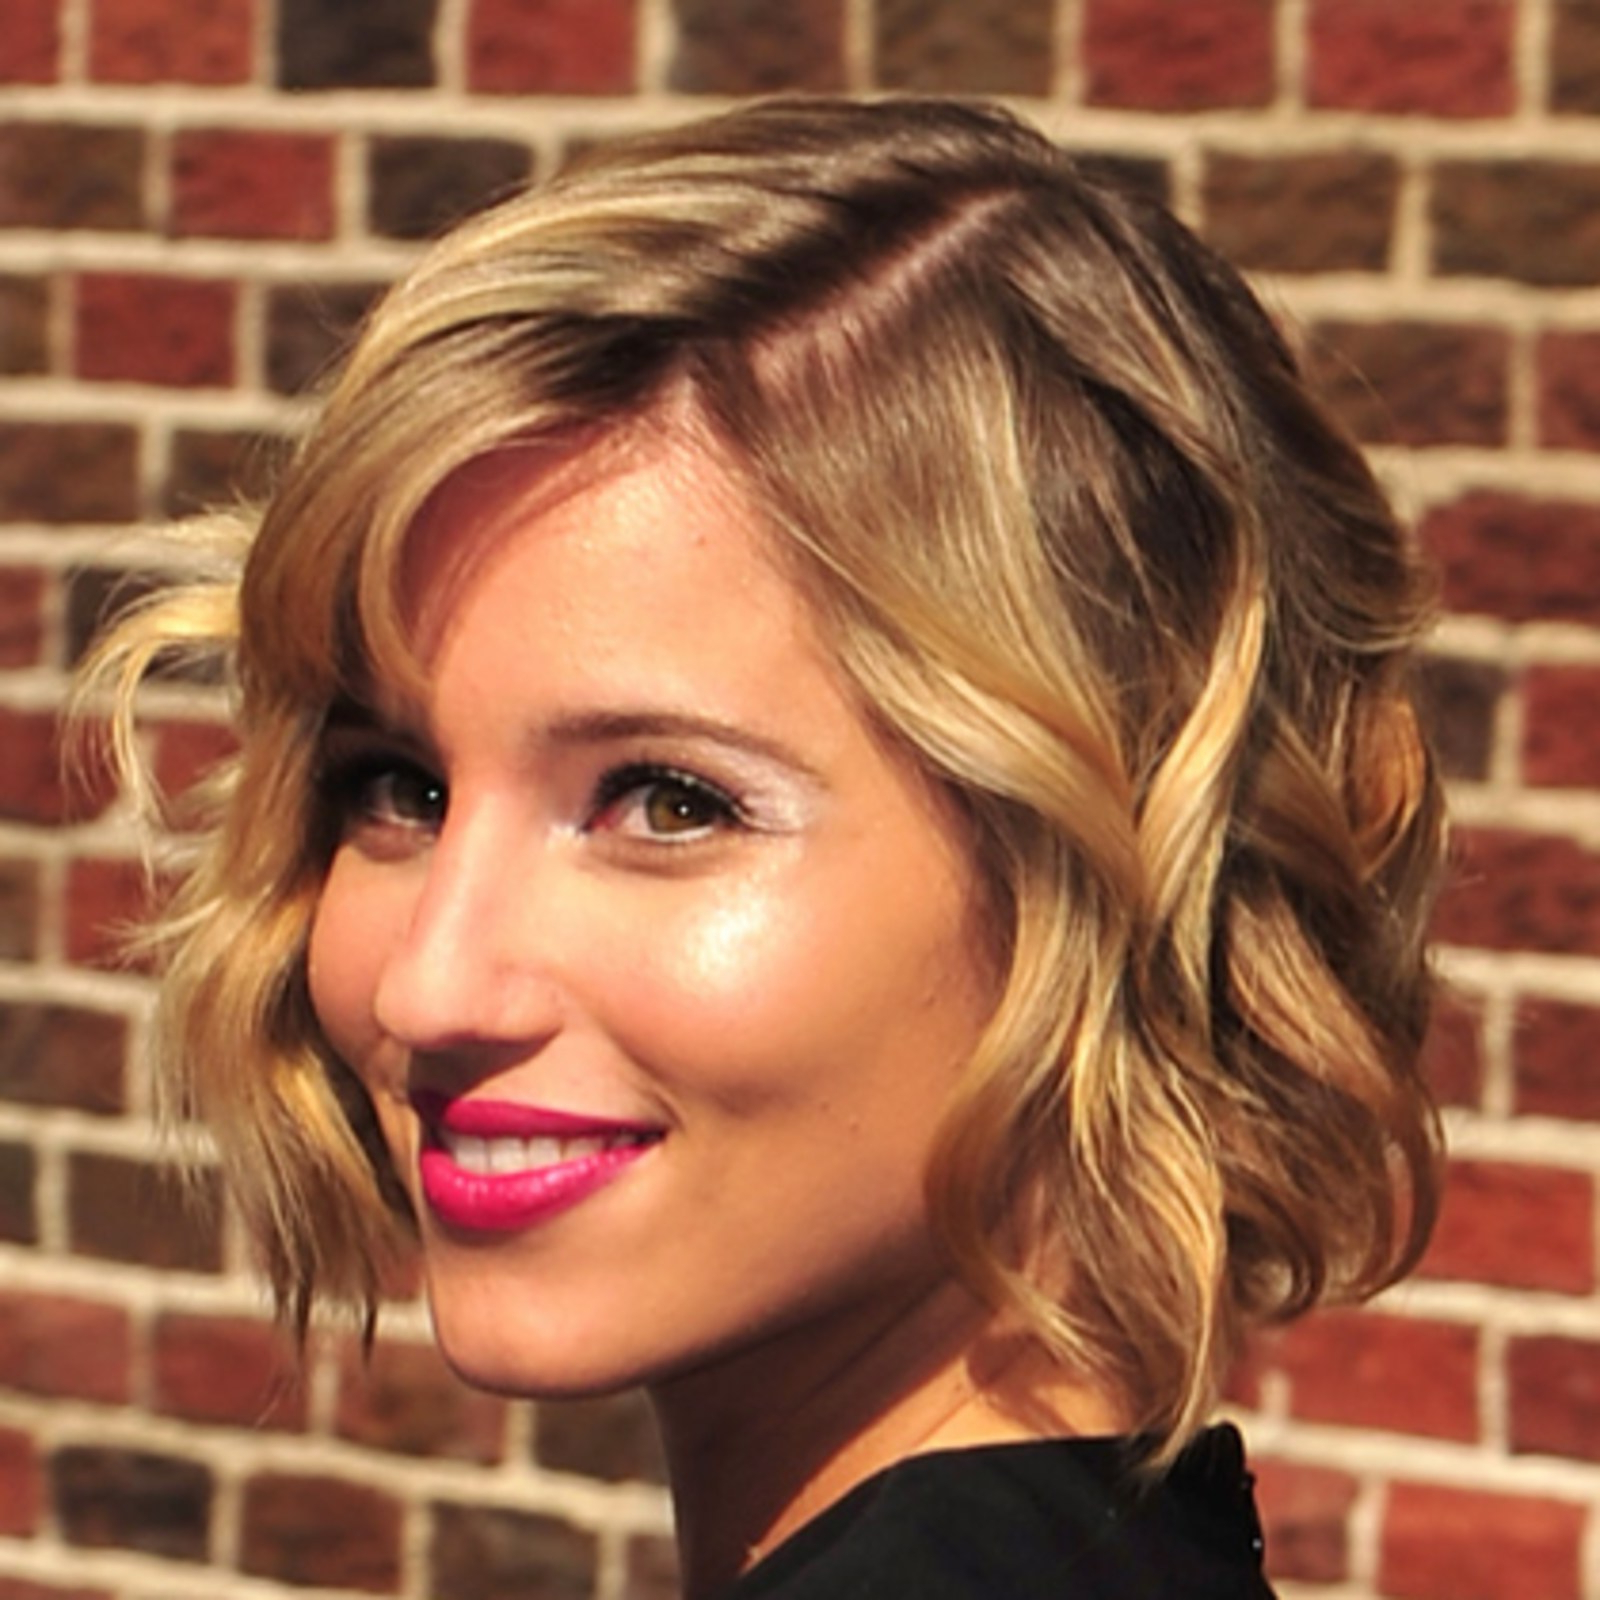 The Top 8 Haircuts For Heart Shaped Faces – Allure For Cute Short Haircuts For Heart Shaped Faces (View 2 of 25)